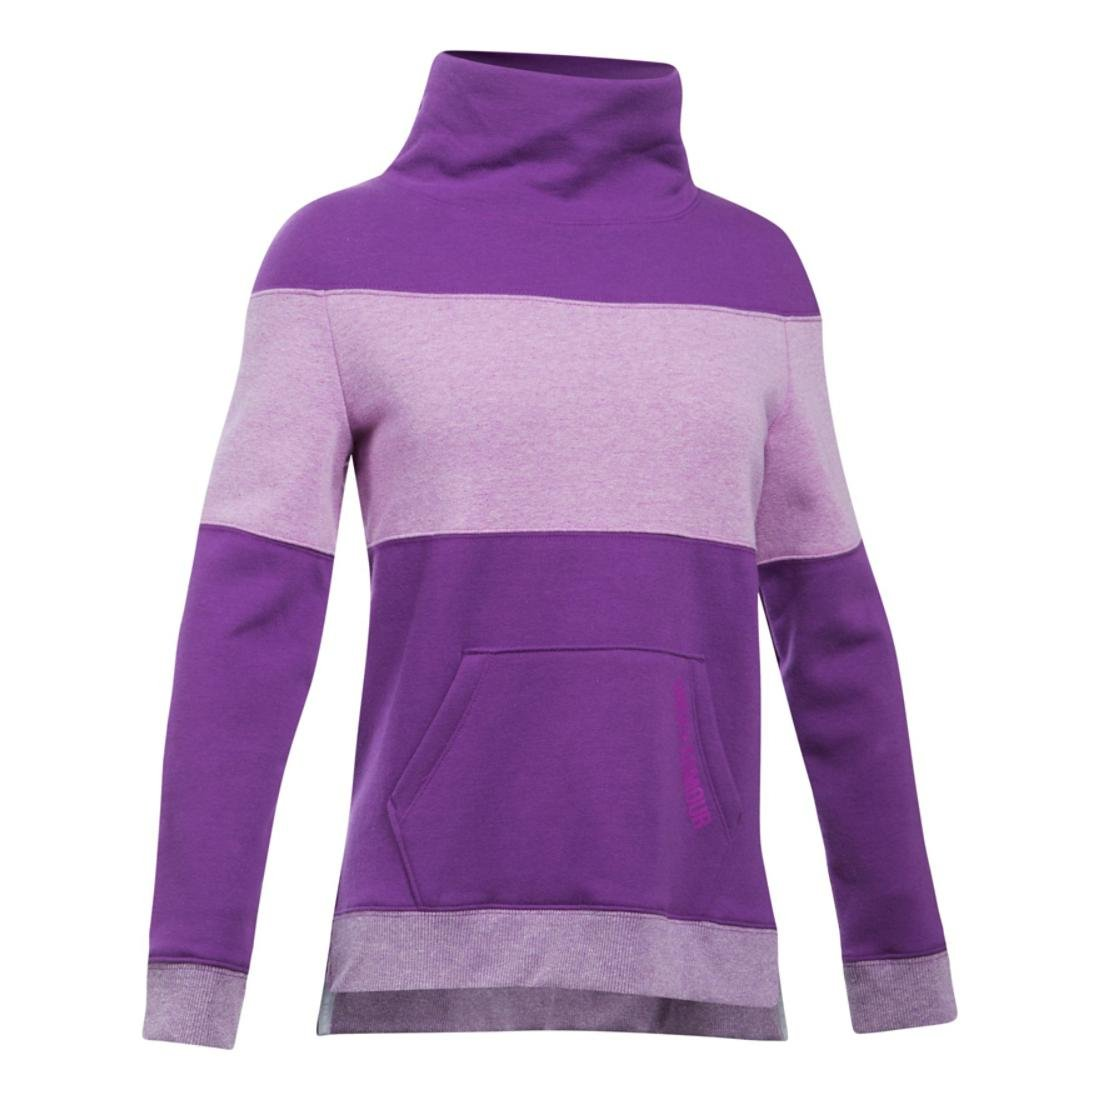 Under Armour Girls' Threadborne Fleece Slouchy Crew,Indulge (547)/Purple Rave, Youth Small